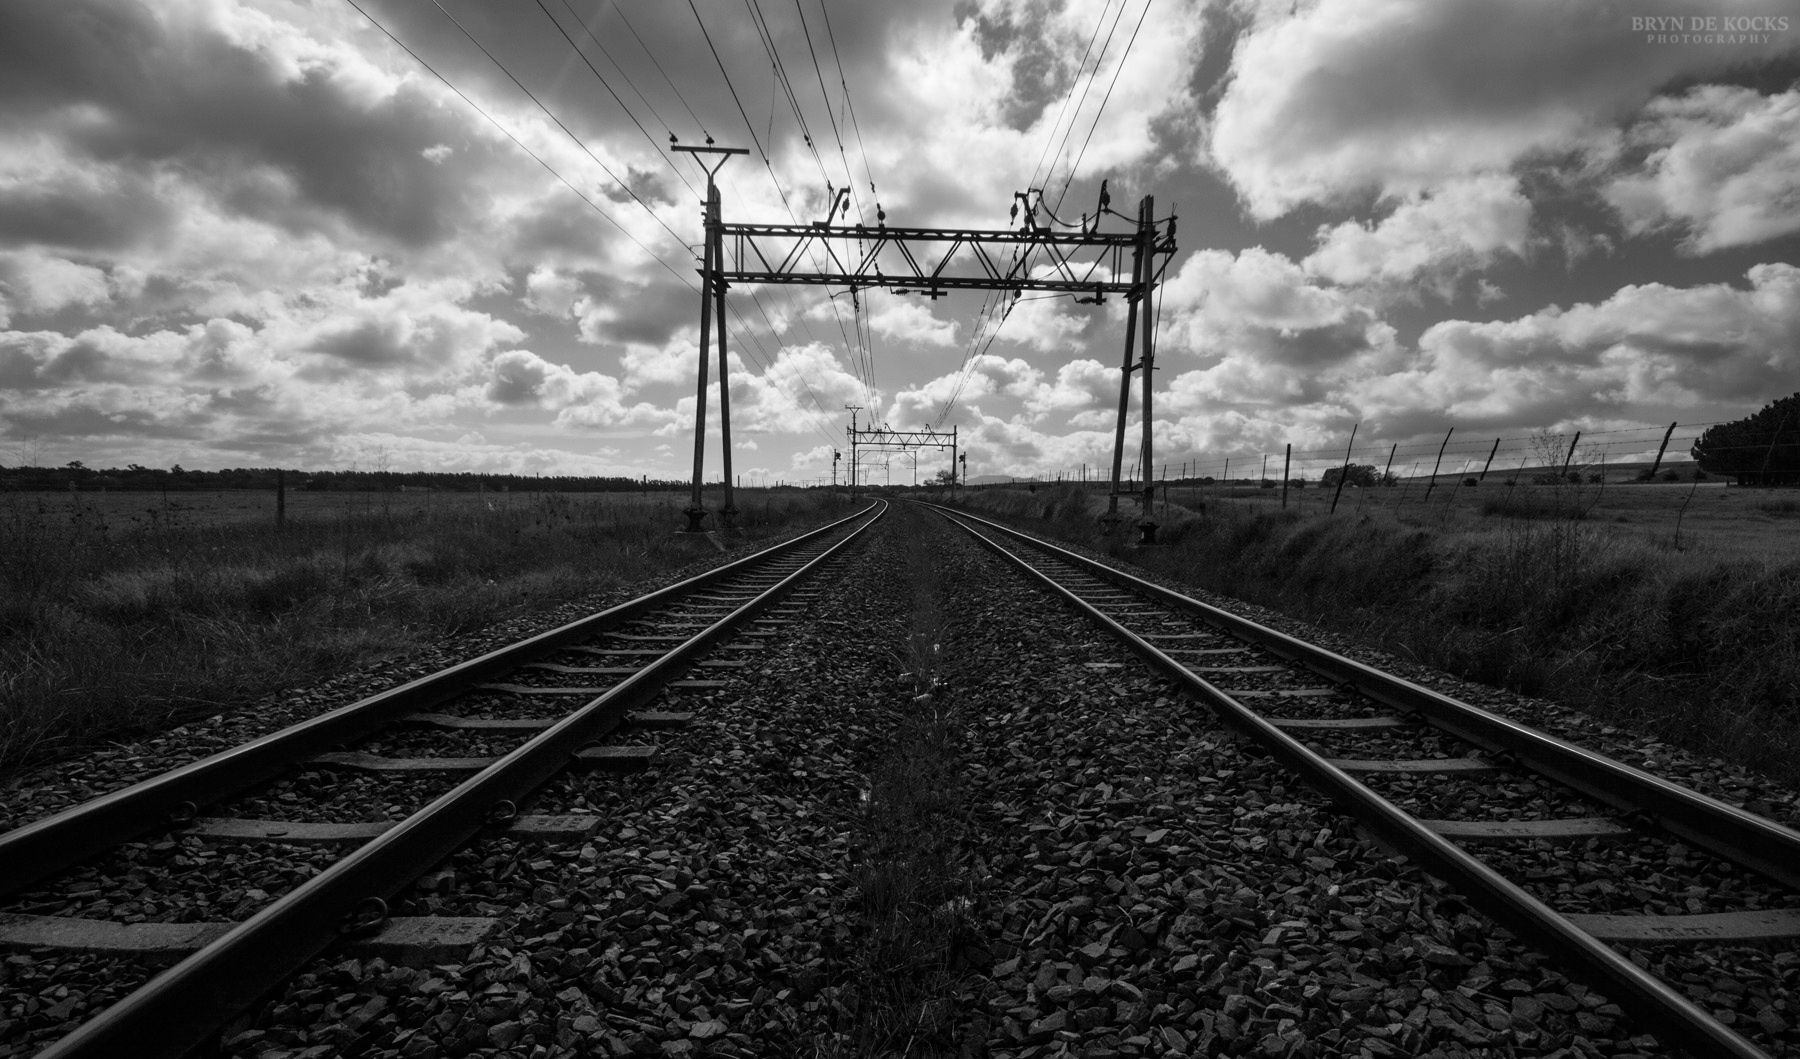 Black And White Railroad 11x85 1